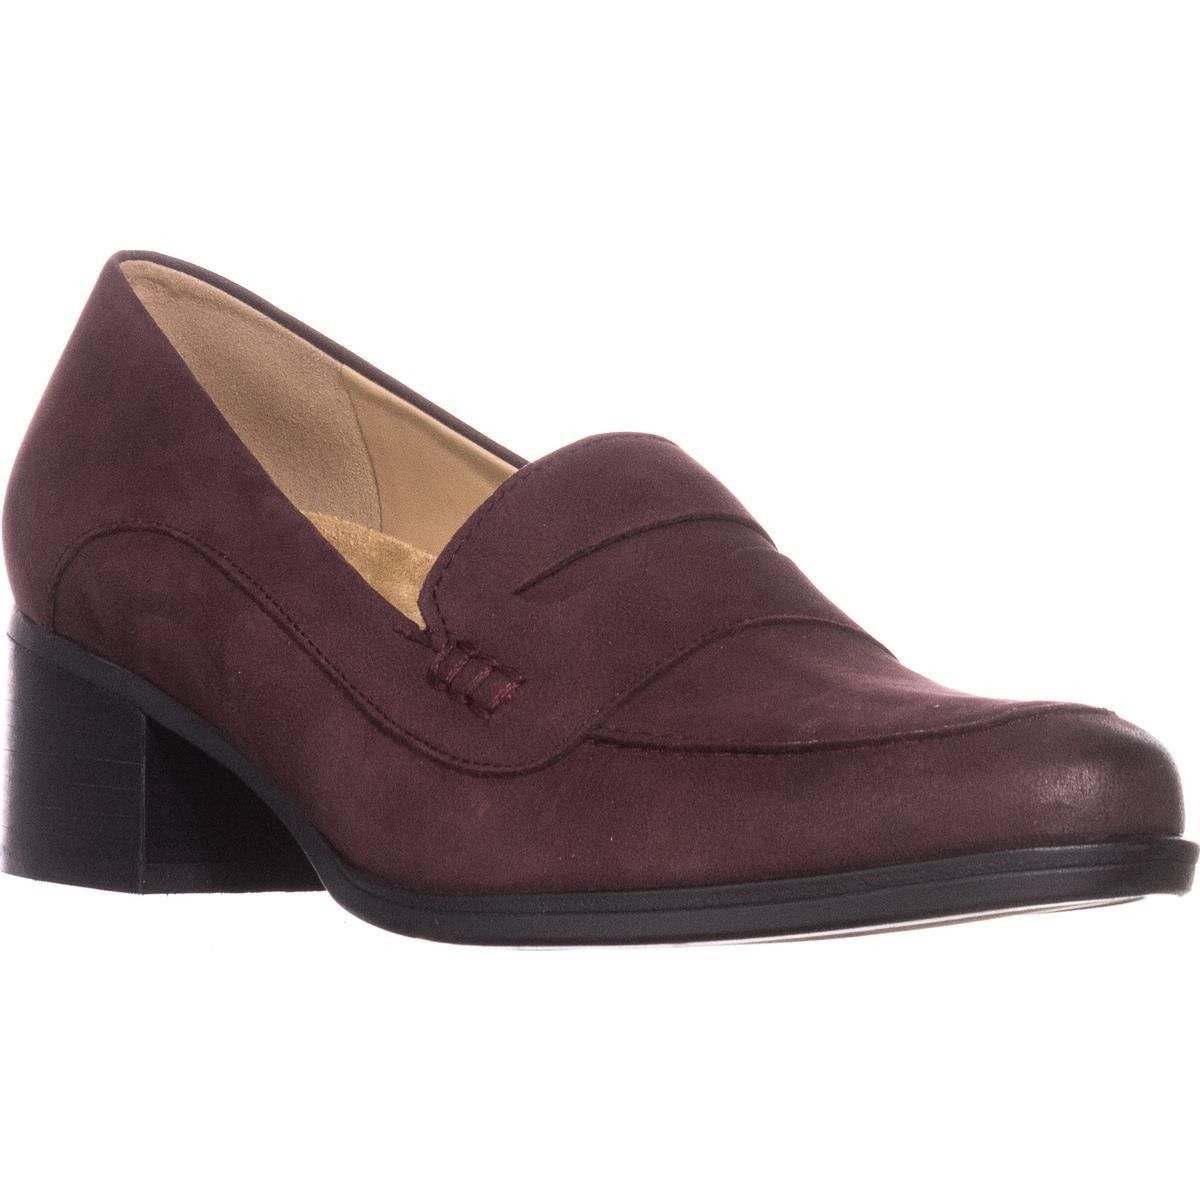 39bf9b31639 naturalizer Dinah Loafer Pumps